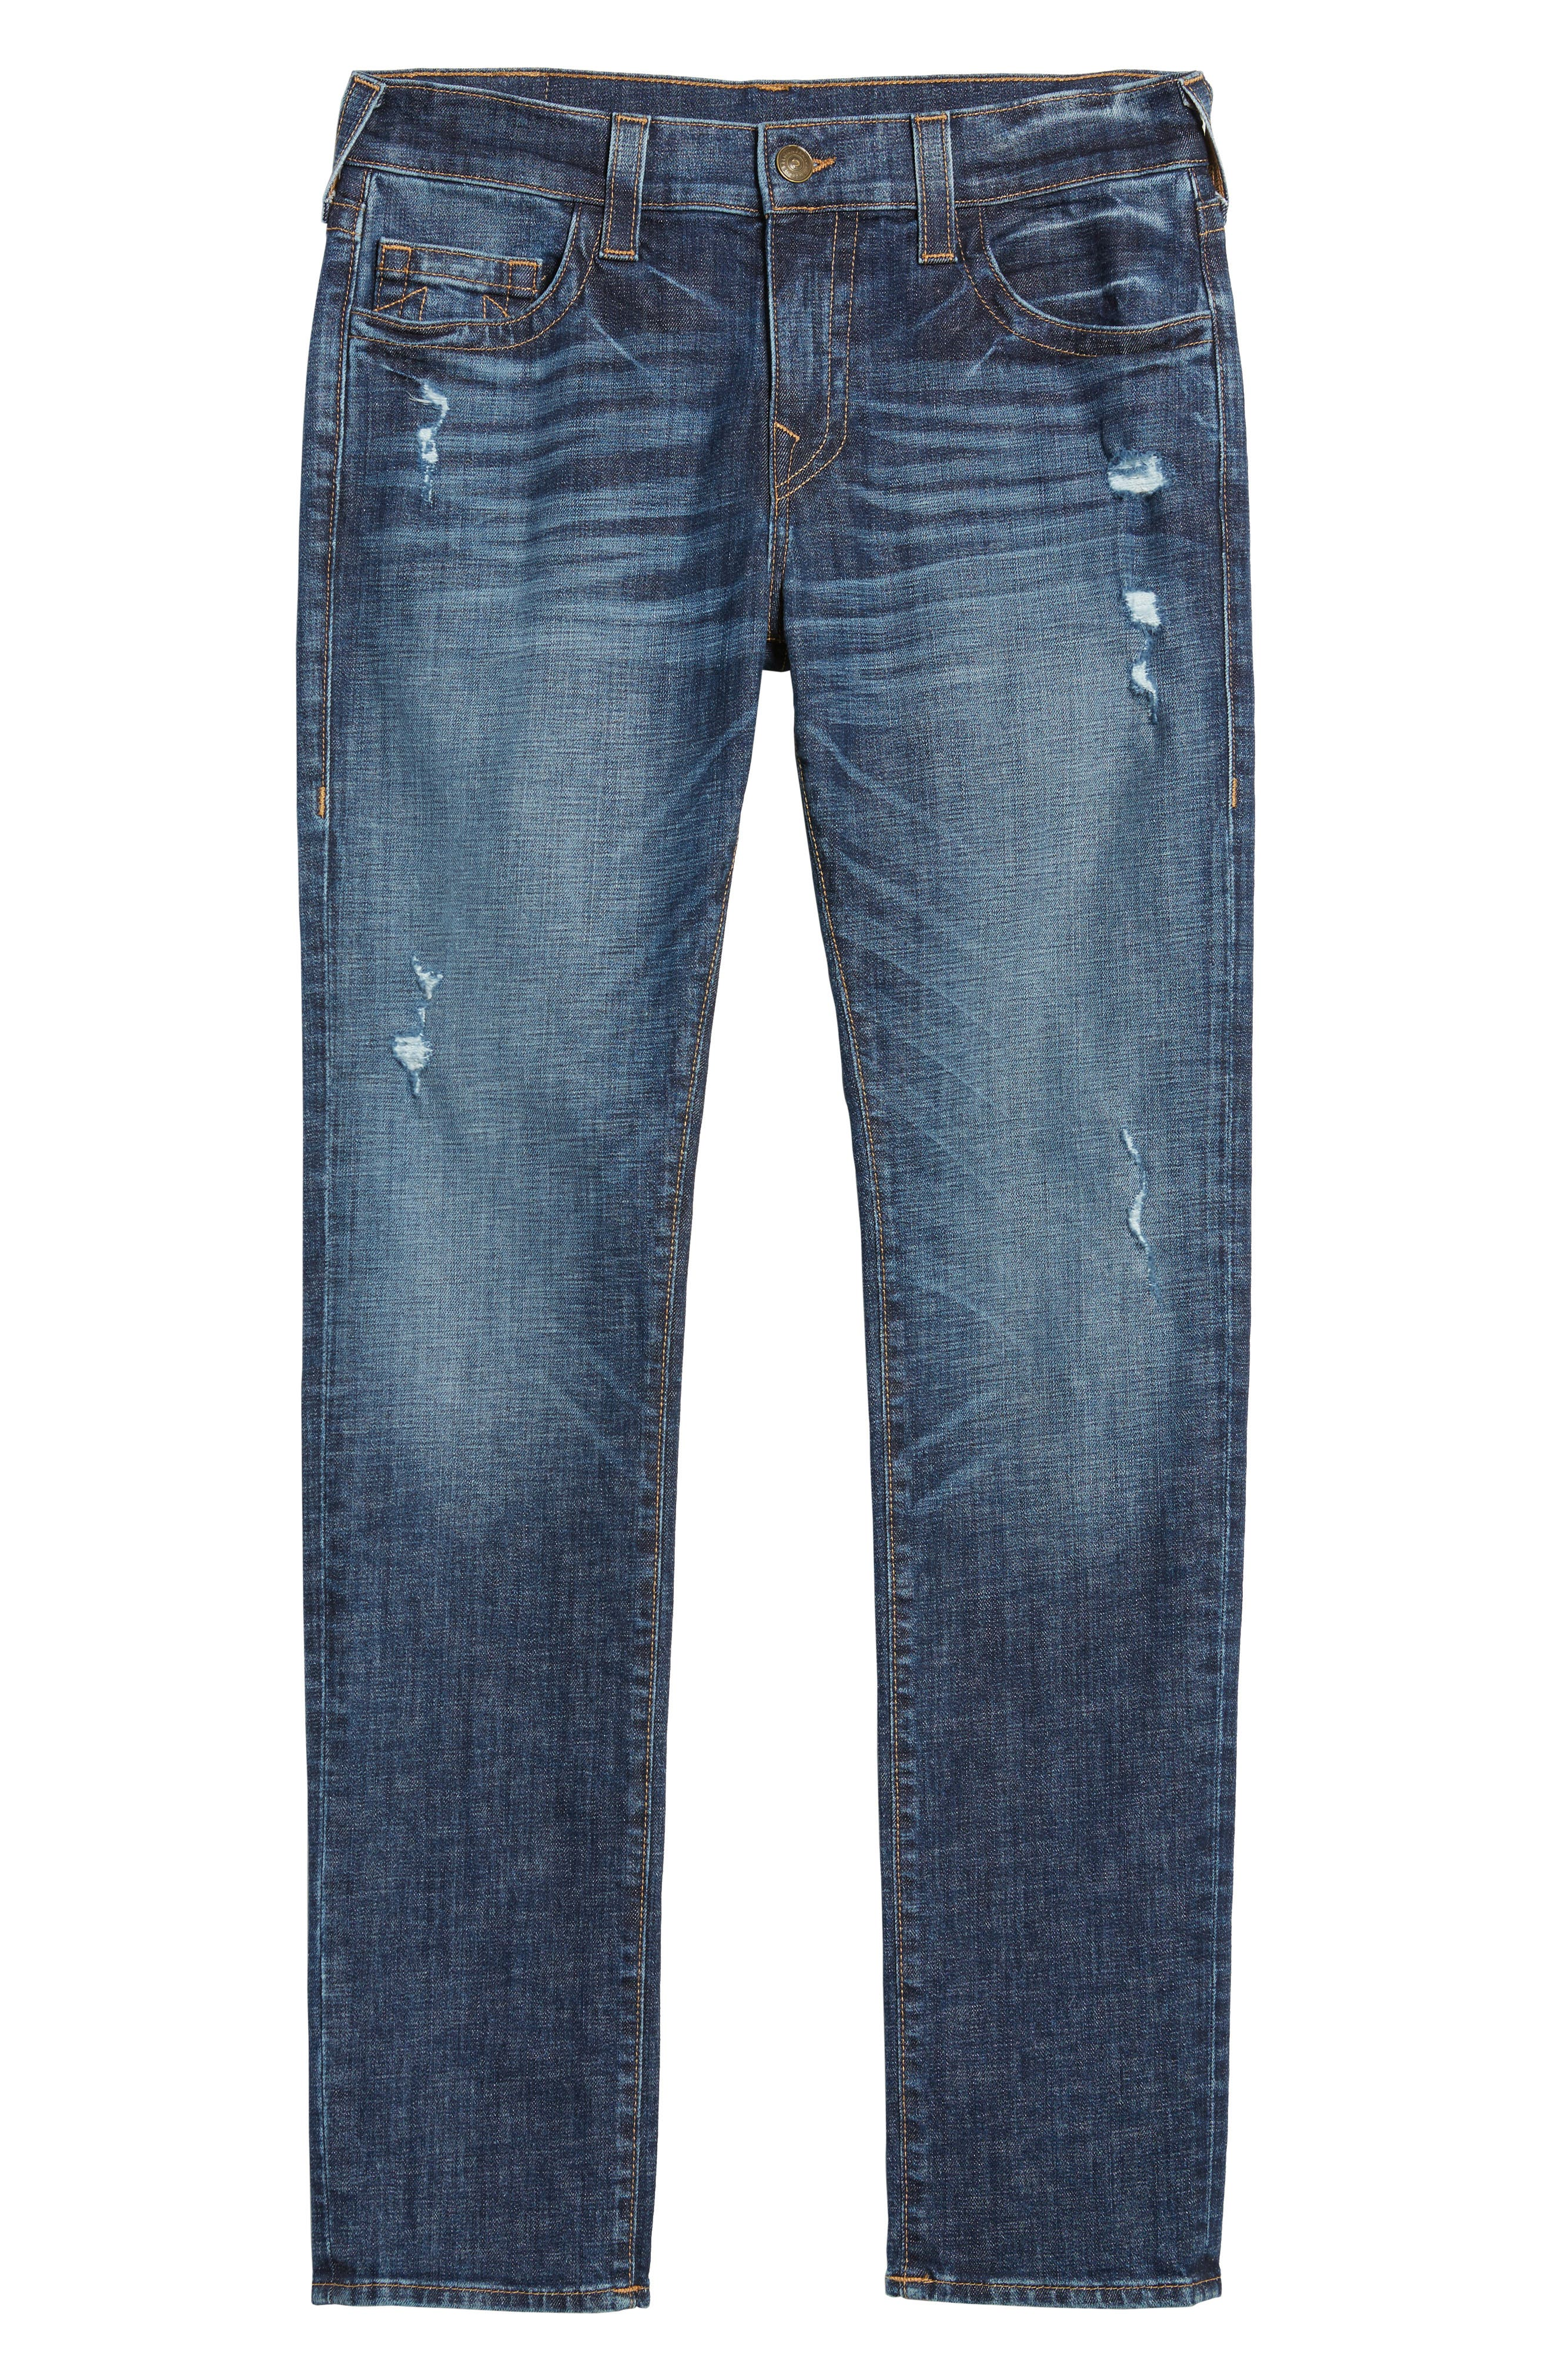 Rocco Skinny Fit Jeans,                             Alternate thumbnail 6, color,                             Dark Wash